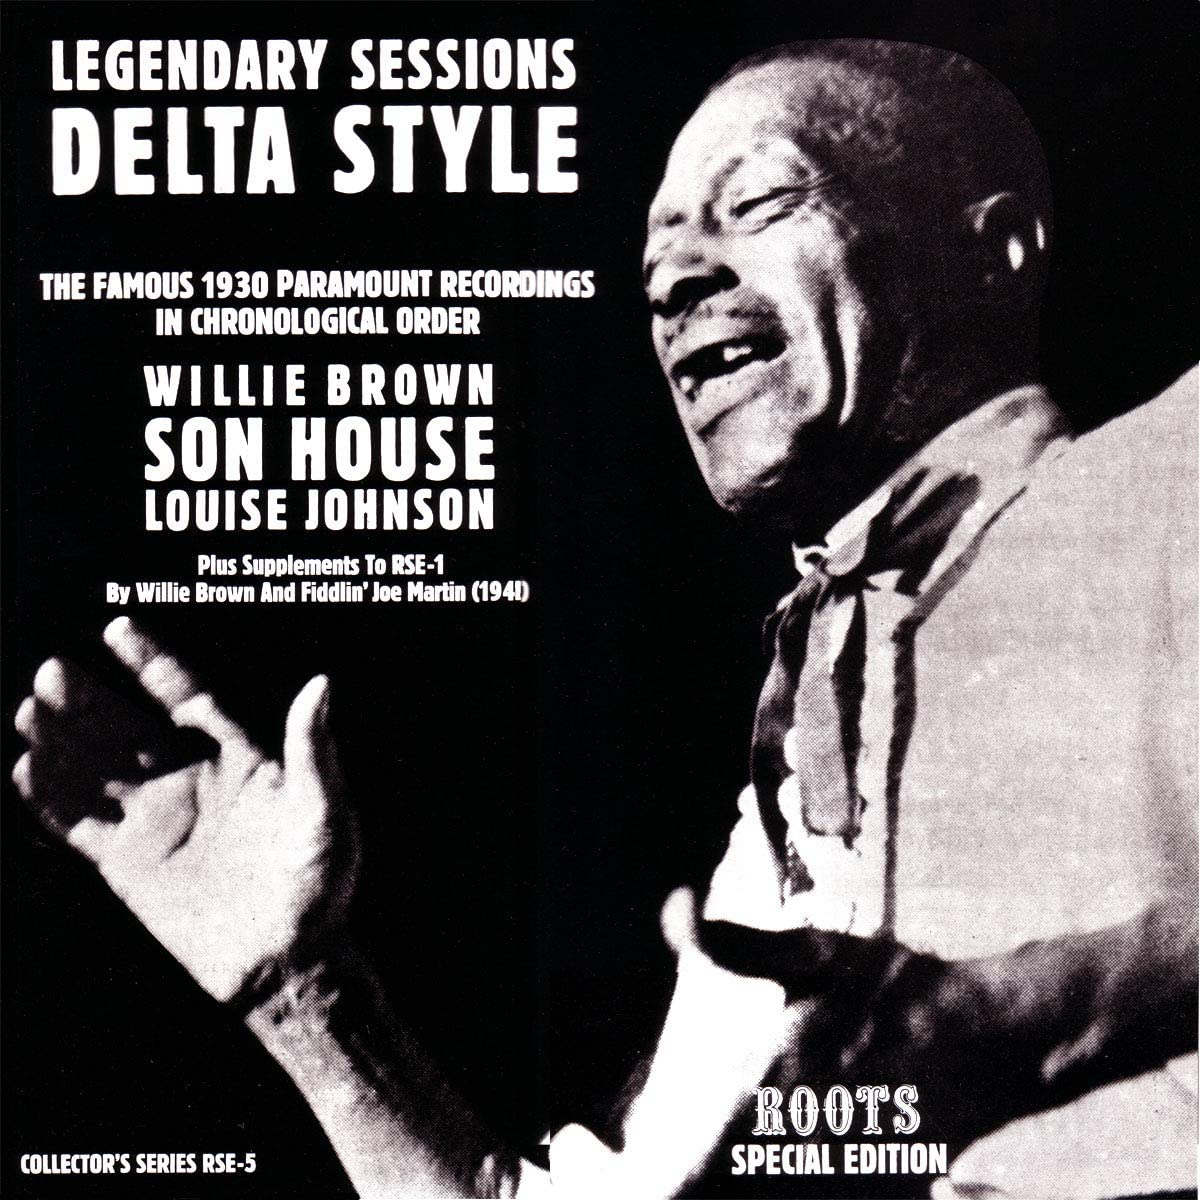 Legendary Sessions/Delta Style [LP]